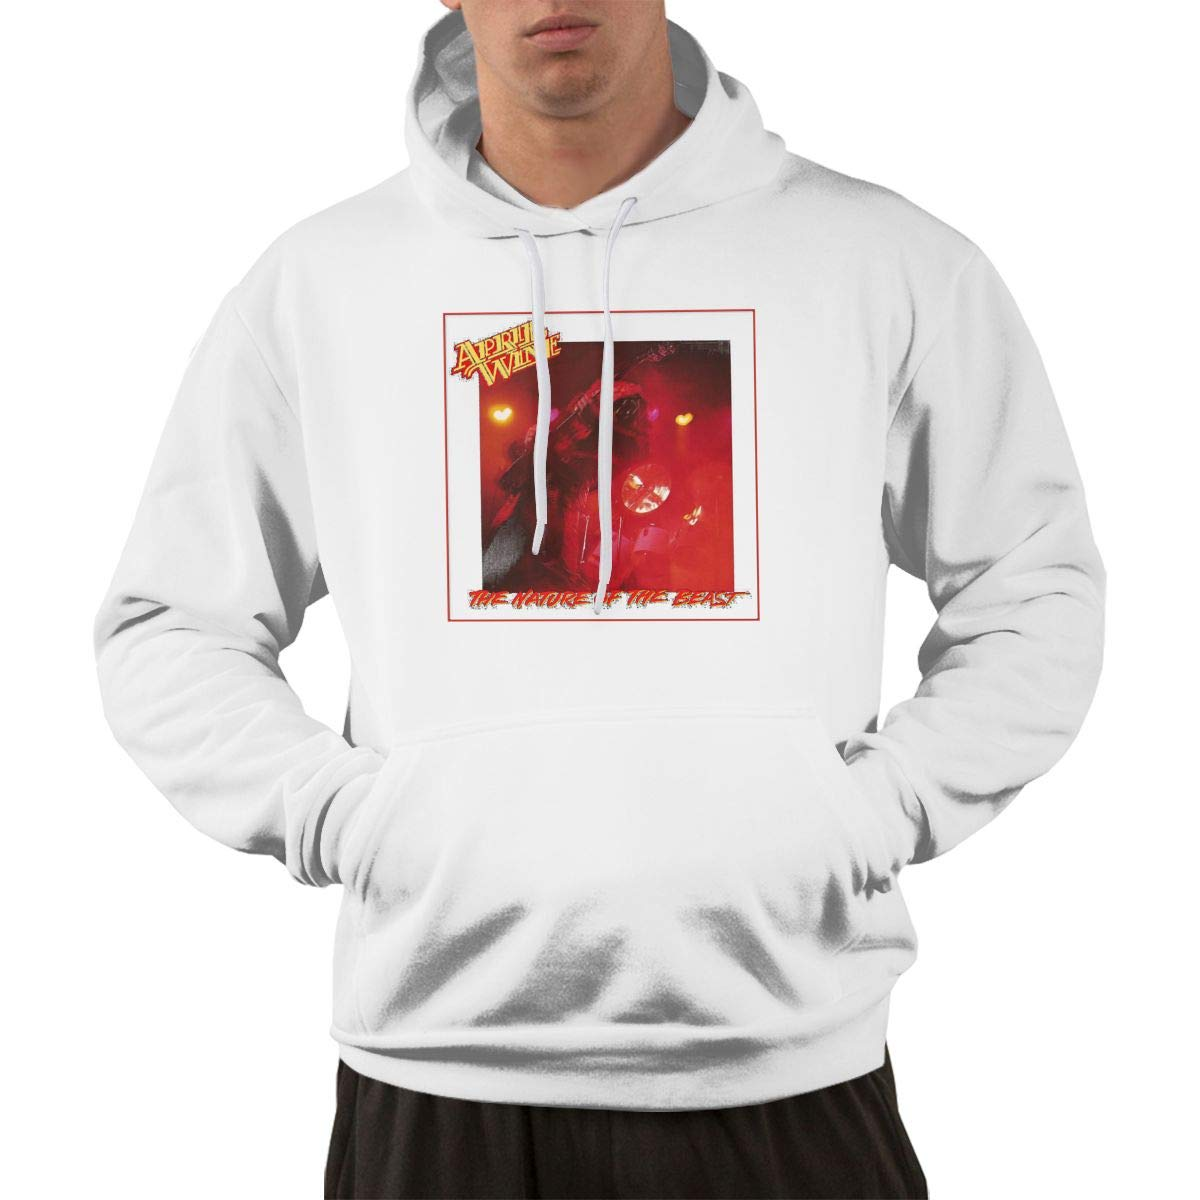 Erman Pullover Comfortable Print April Wine Music Band Cover Hooded Shirts With Pocket S